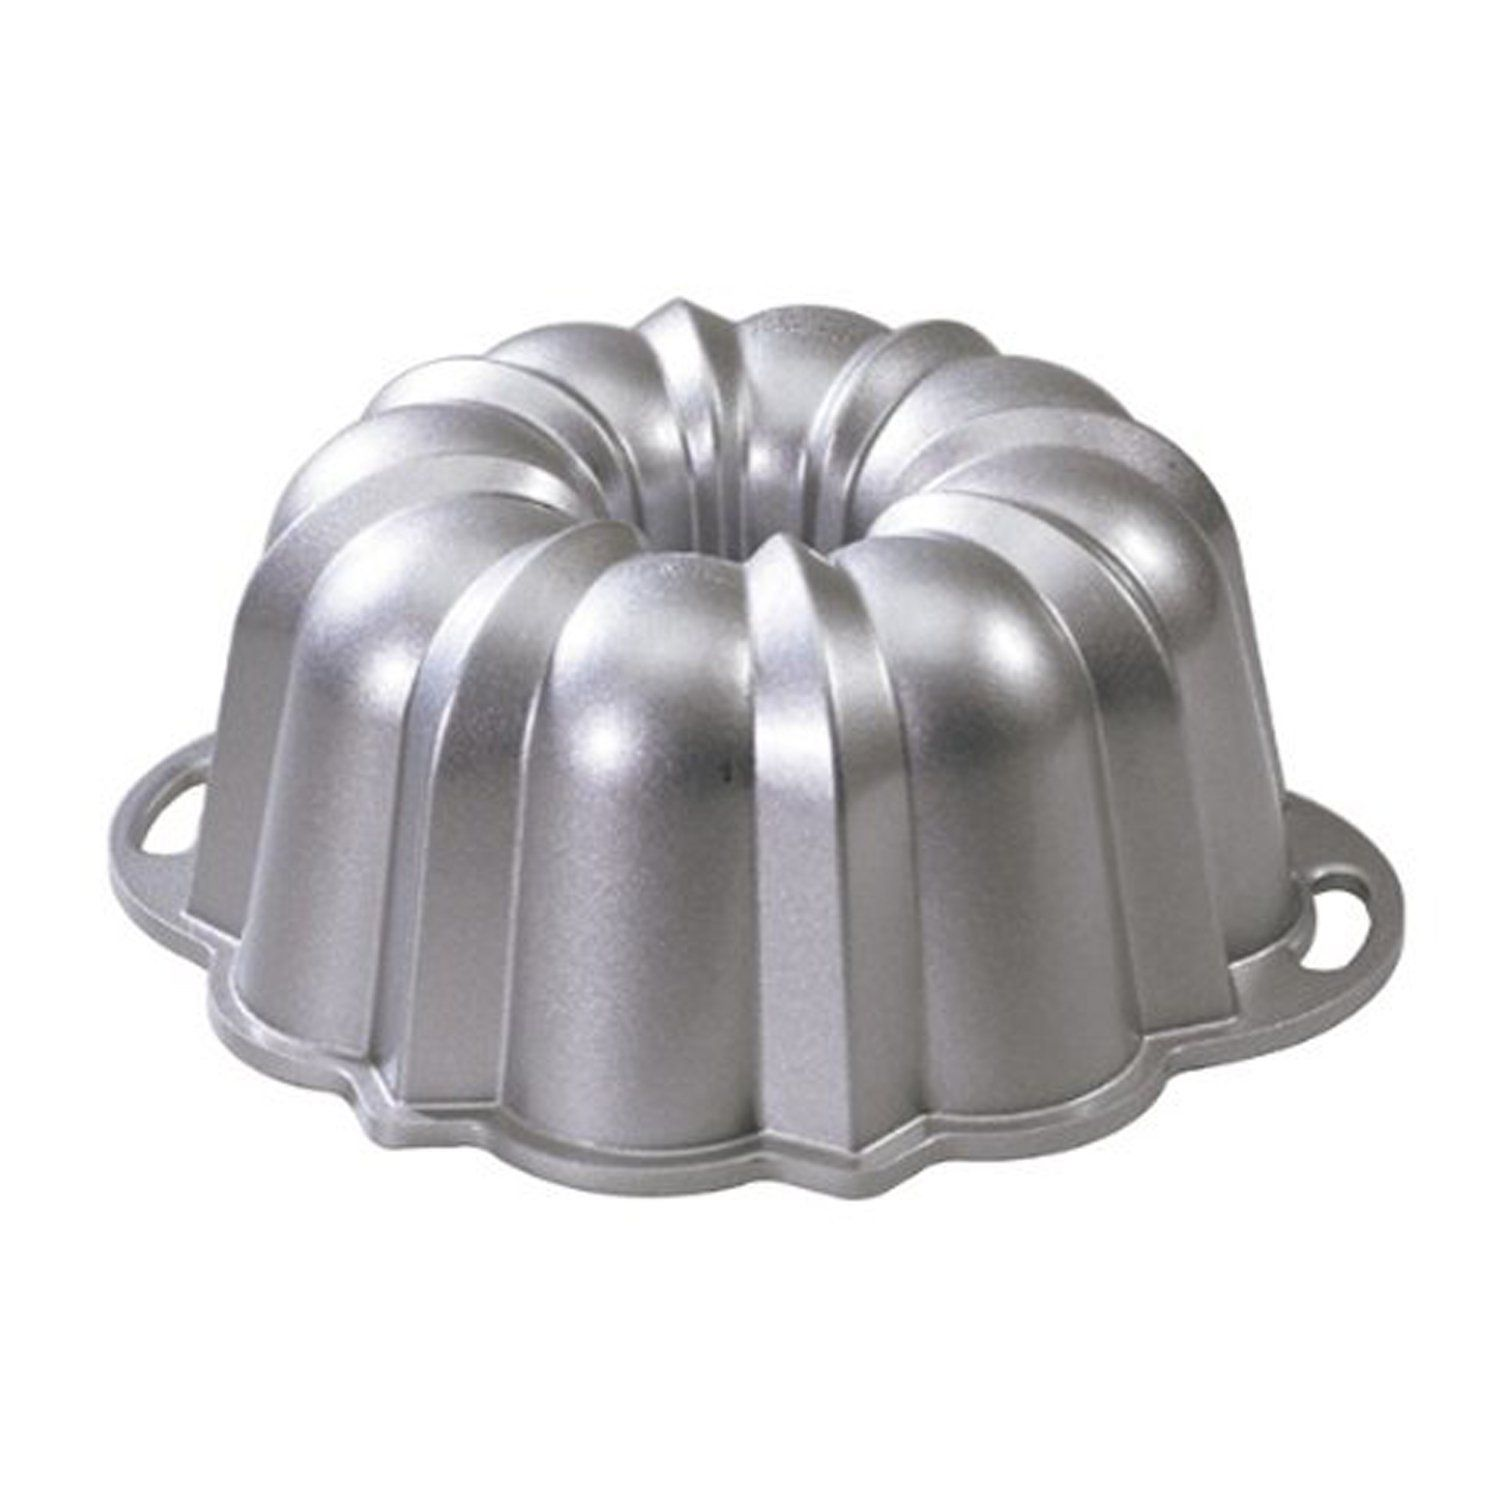 10- to 15-Cup Bundt Pan